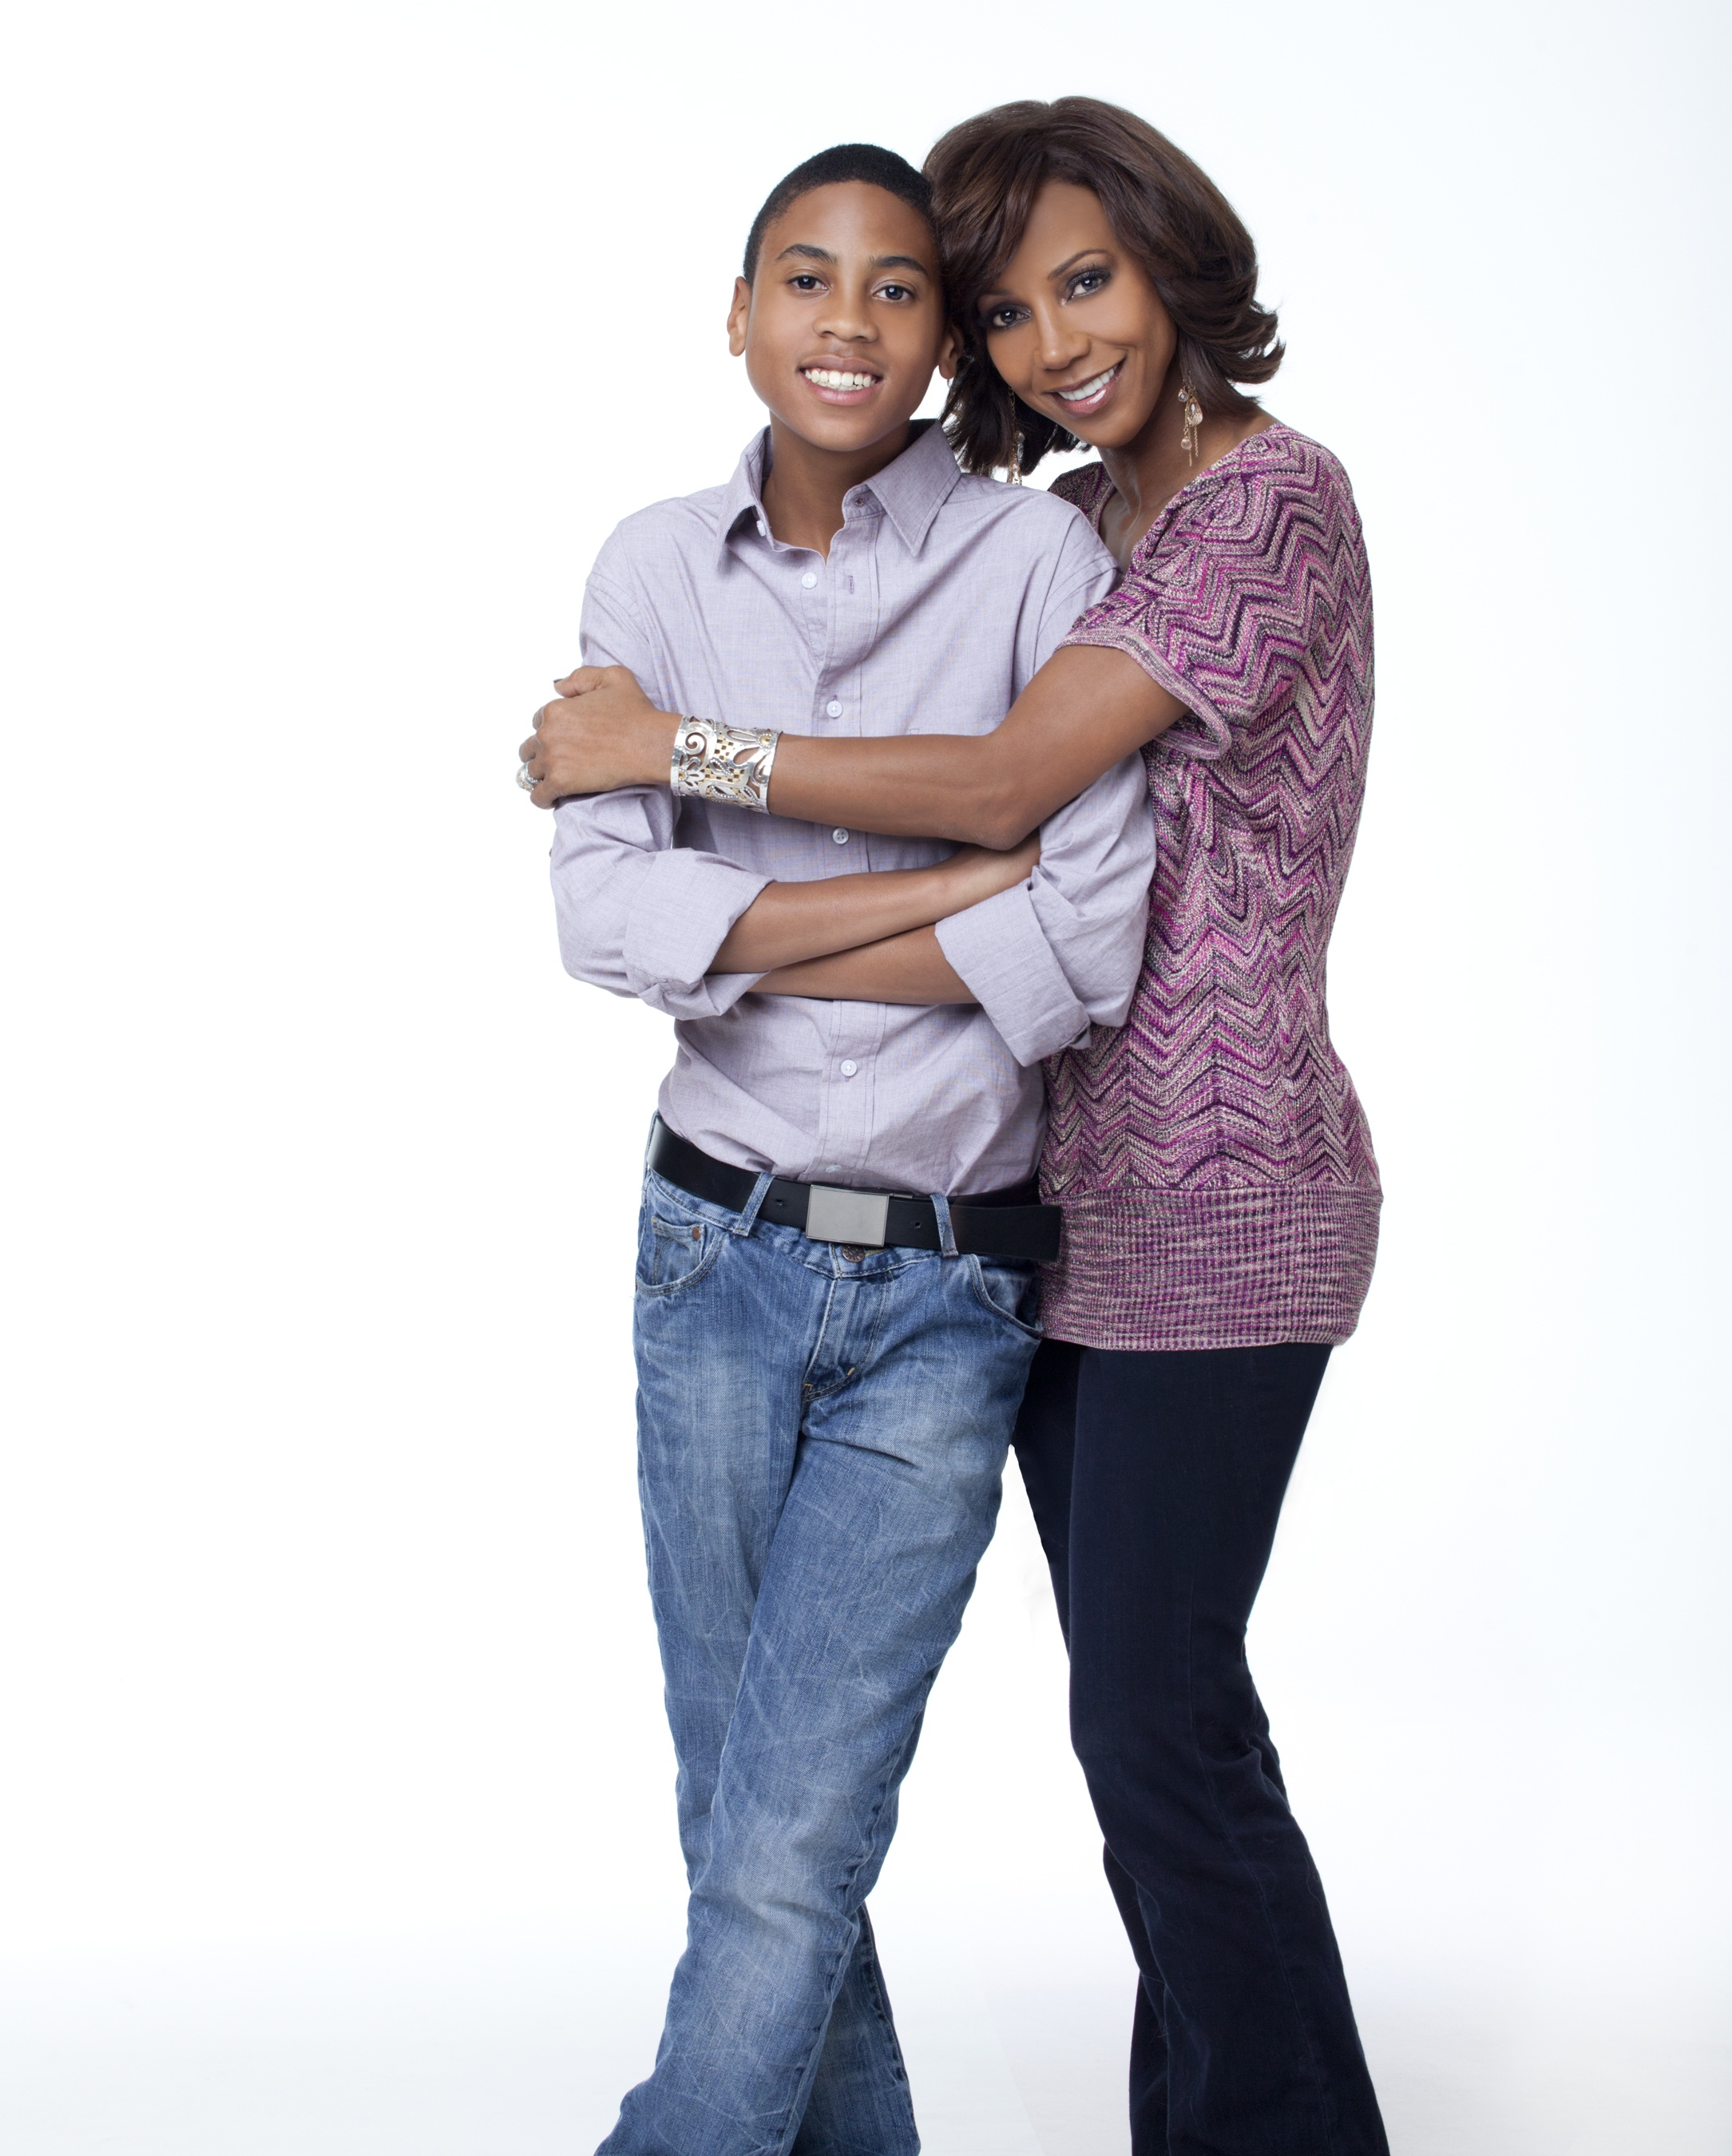 Celeb Q&A: Autism Advocate Holly Robinson Peete Answers YOUR Questions